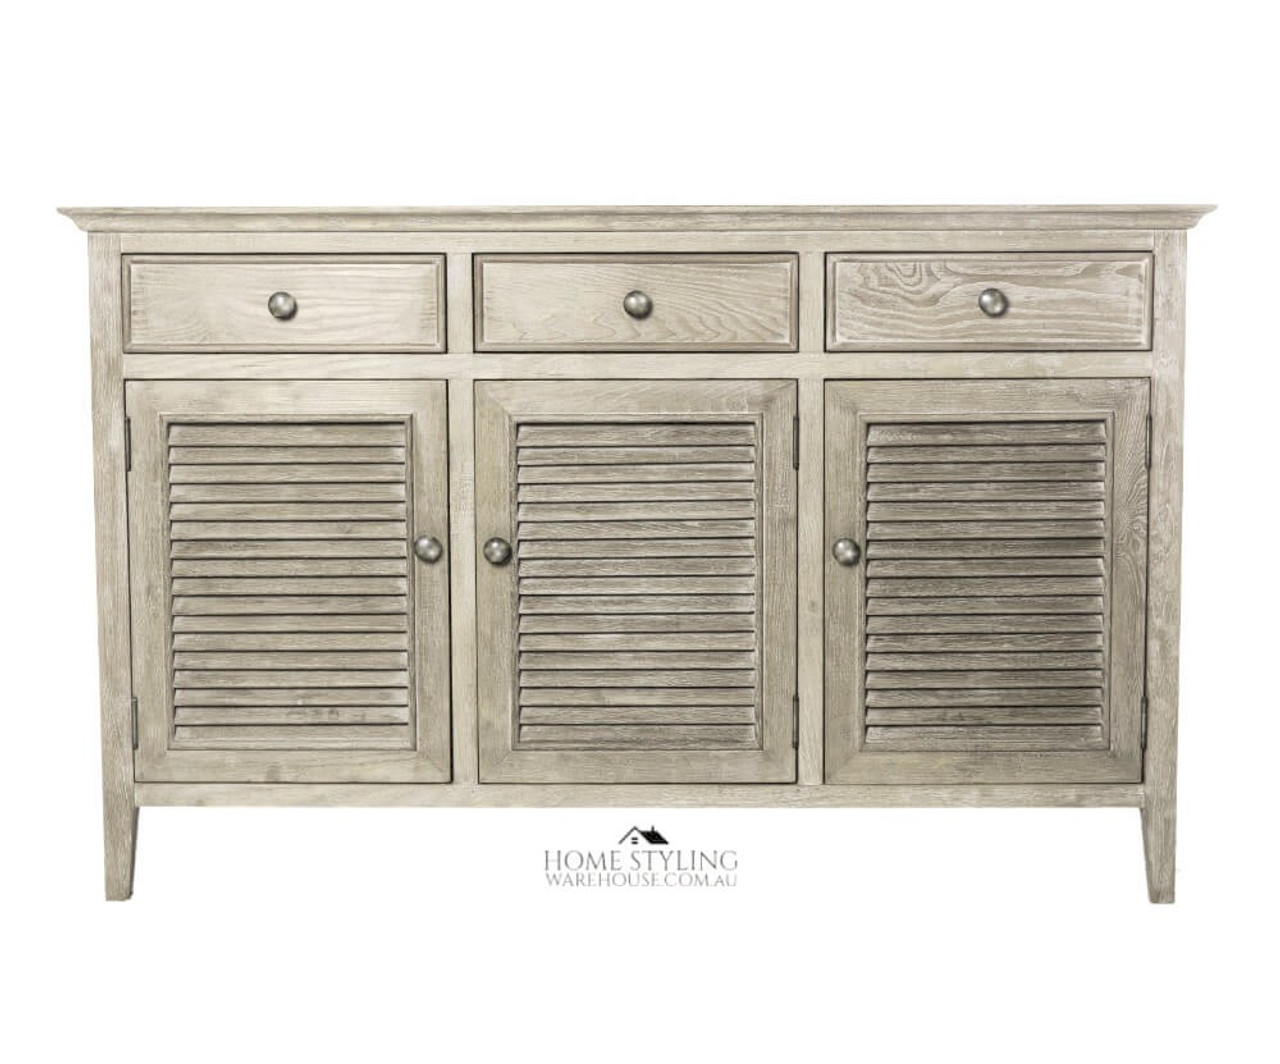 Buffet Table.Hamptons Buffet Table Sideboard Console Louvre 3 Door Drawers Wood Cabinet Cupboard Storage